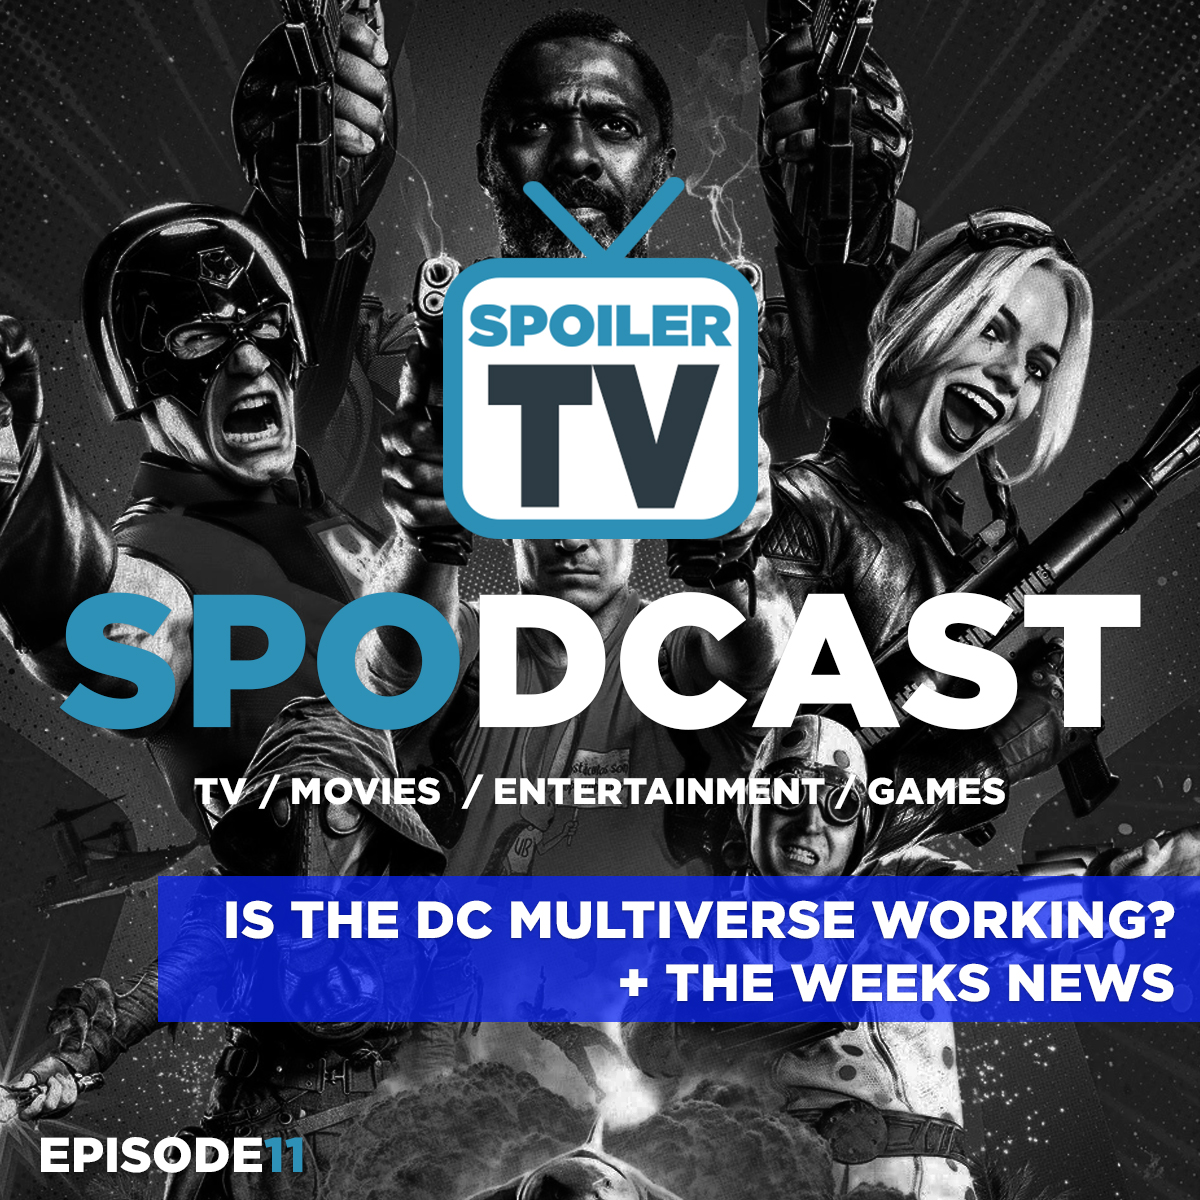 Is the DC multiverse actually working? + the weeks news roundup   Spodcast 11   SPOILERTV